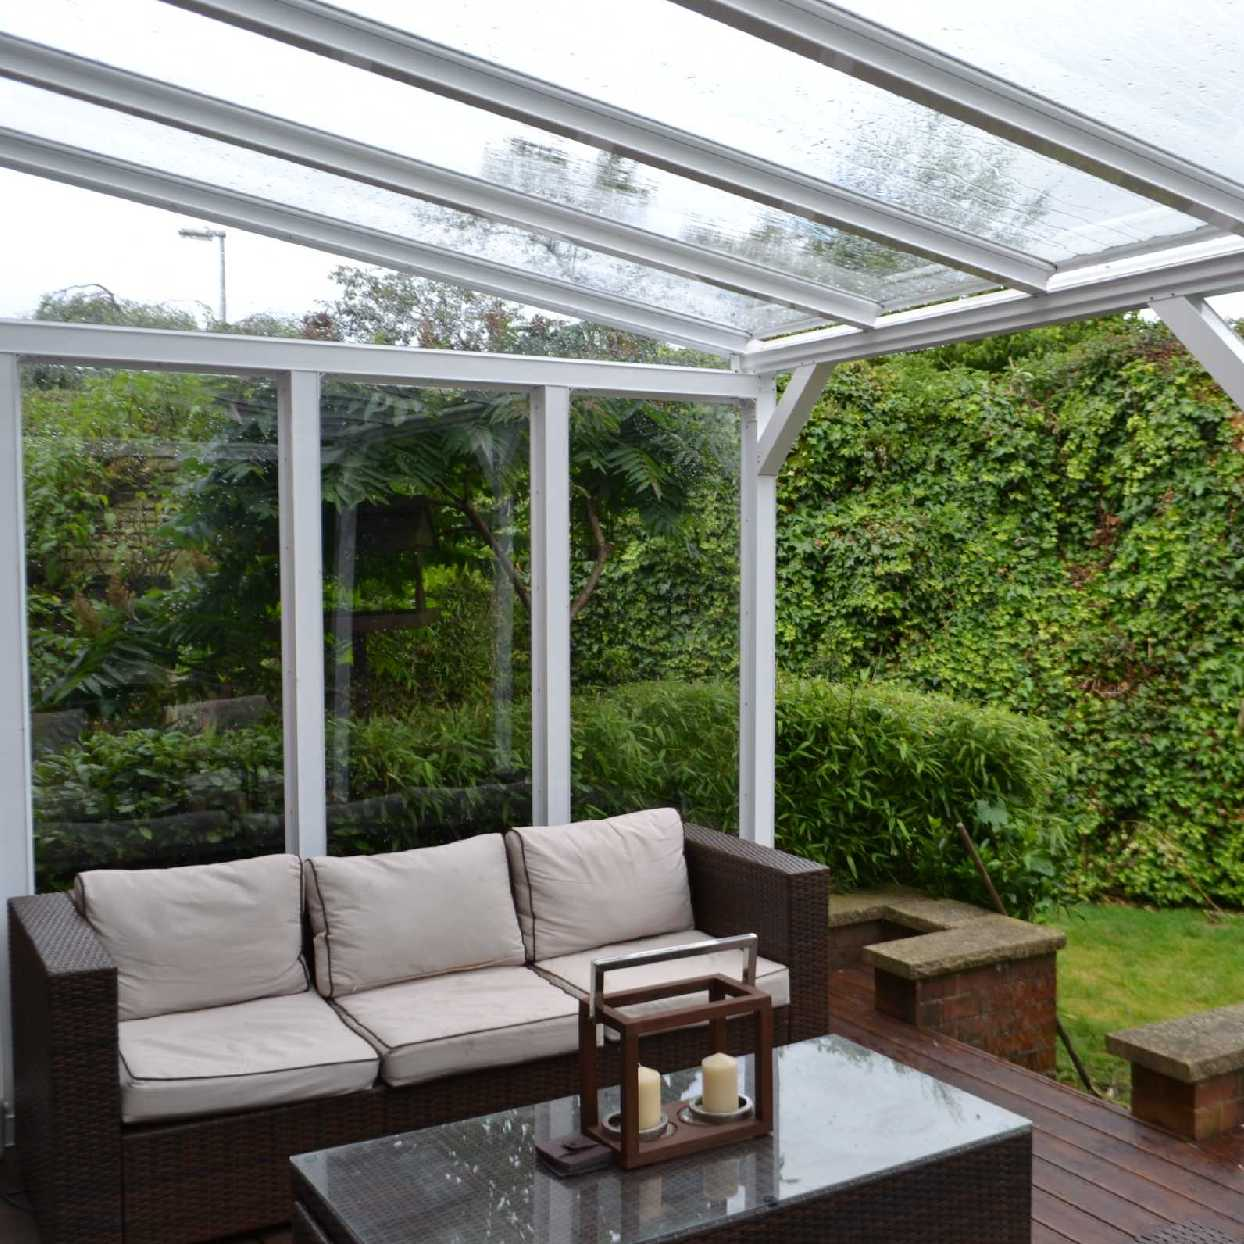 Great selection of Omega Smart White Lean-To Canopy with 16mm Polycarbonate Glazing - 6.3m (W) x 2.5m (P), (4) Supporting Posts